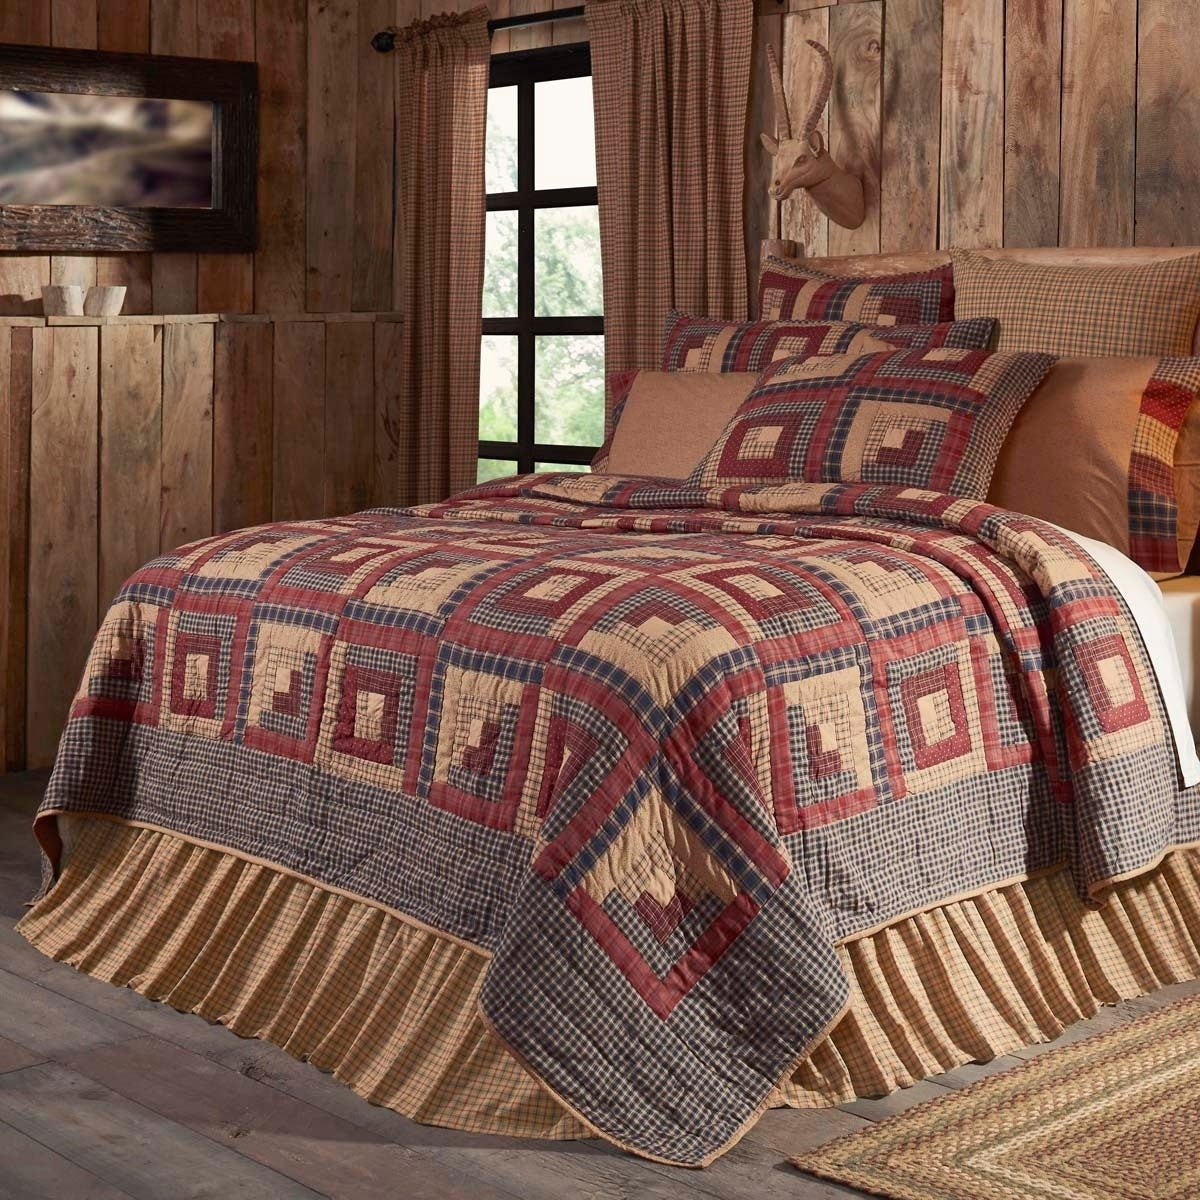 VHC Brands Millsboro Cotton Quilt (Shams Not Included) (K...